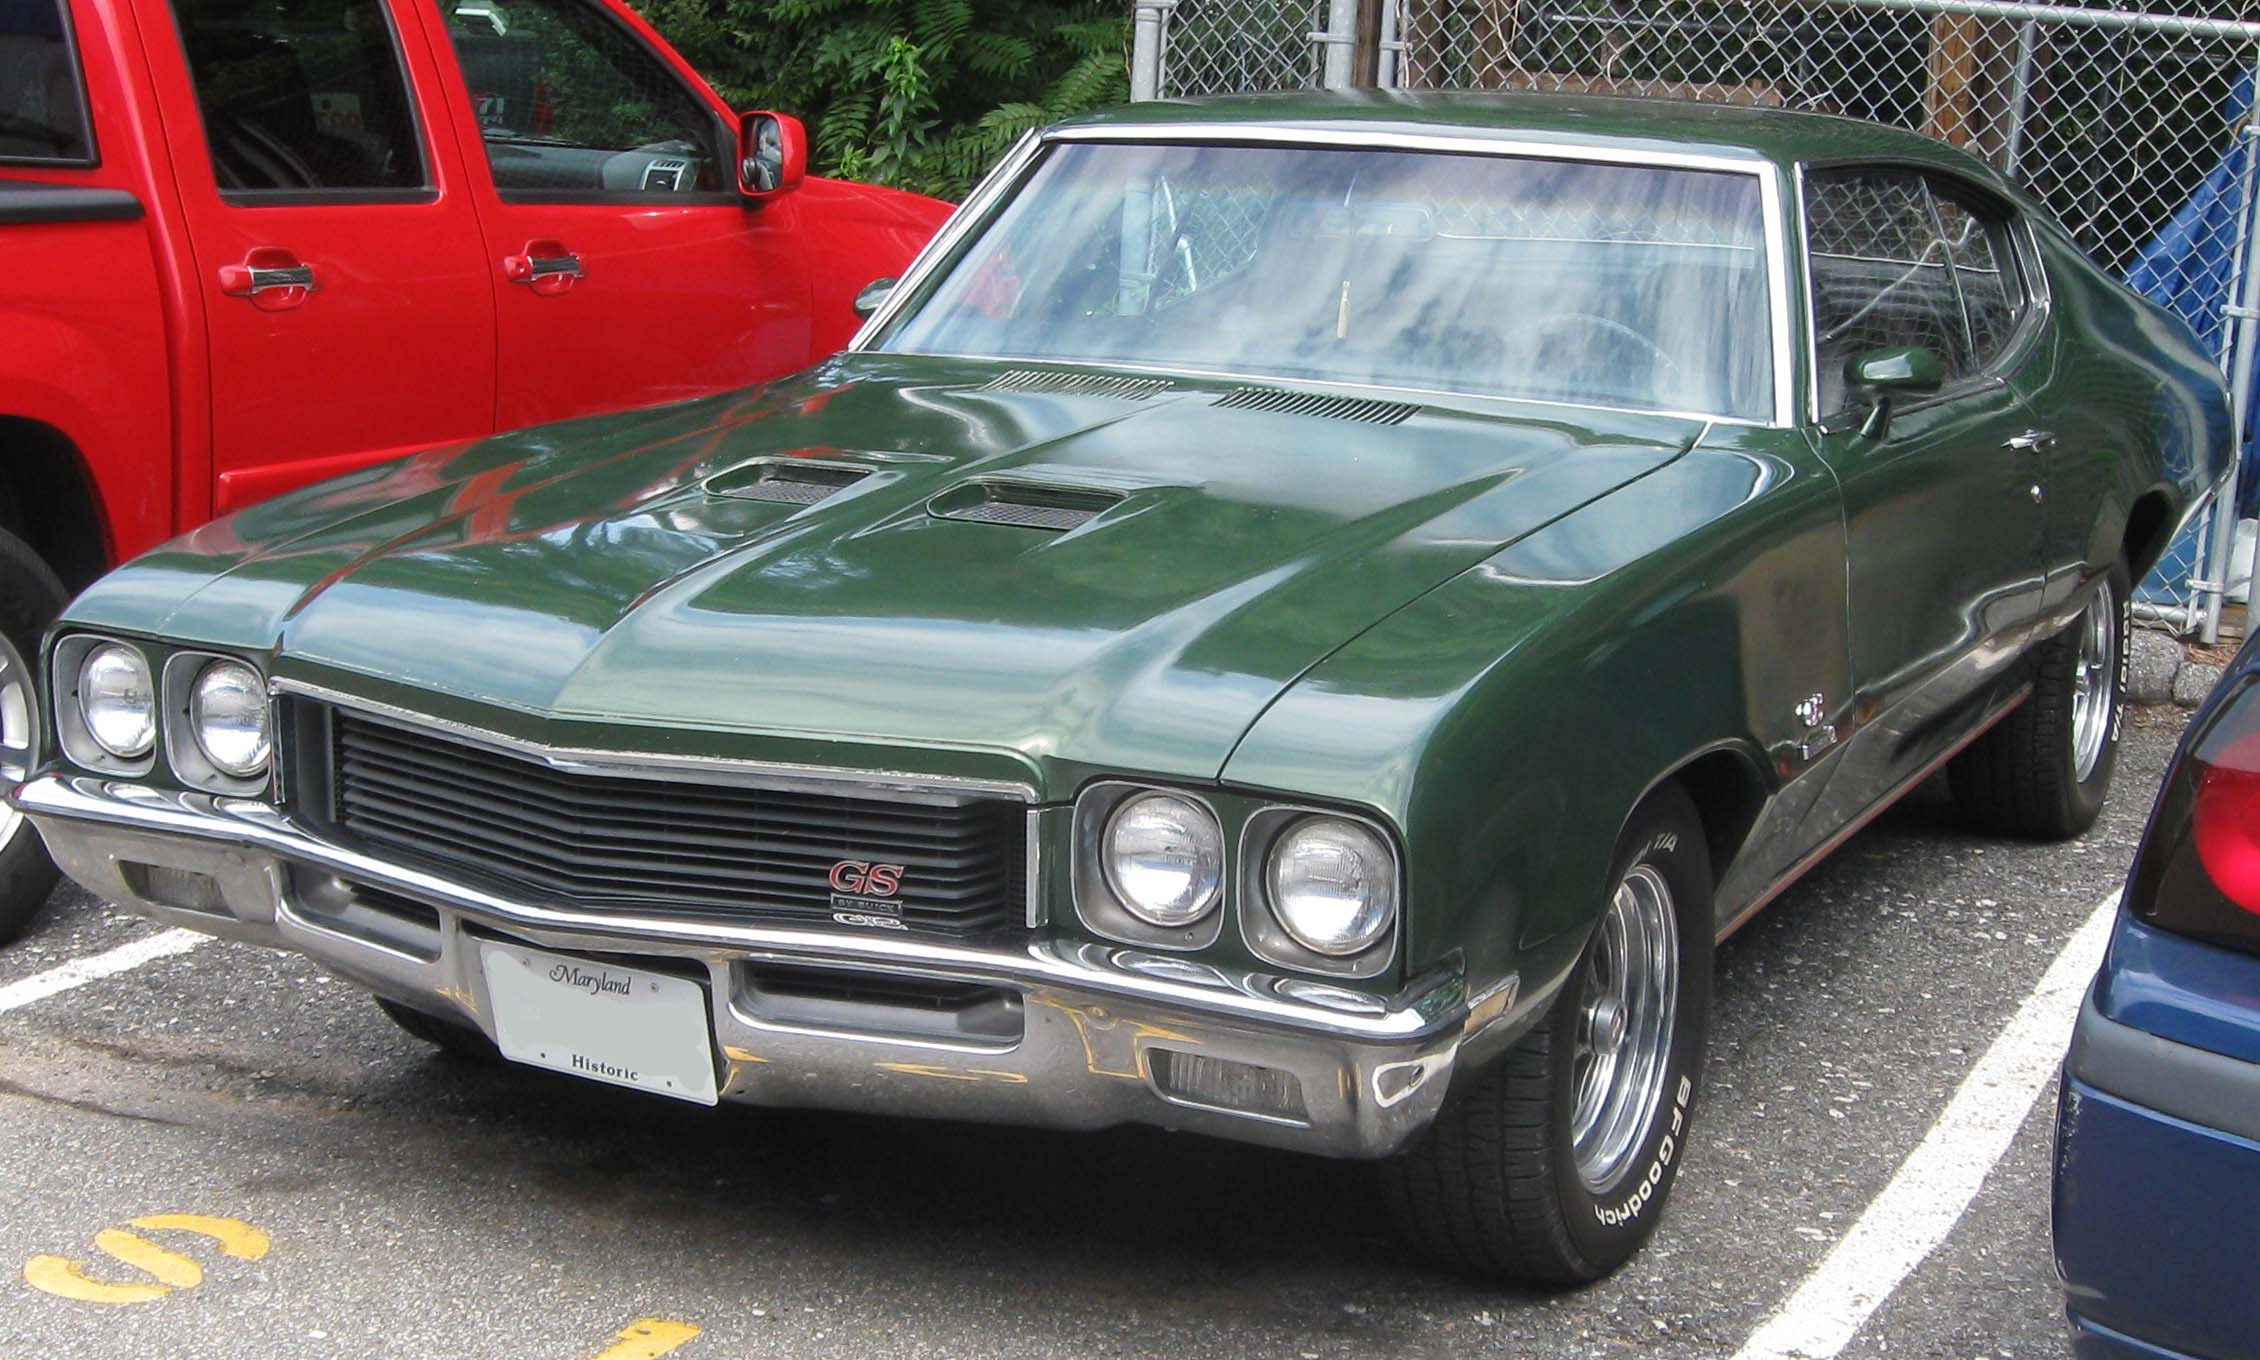 File:Buick Skylark GS -- 08-12-2010 1.jpg - Wikimedia Commons